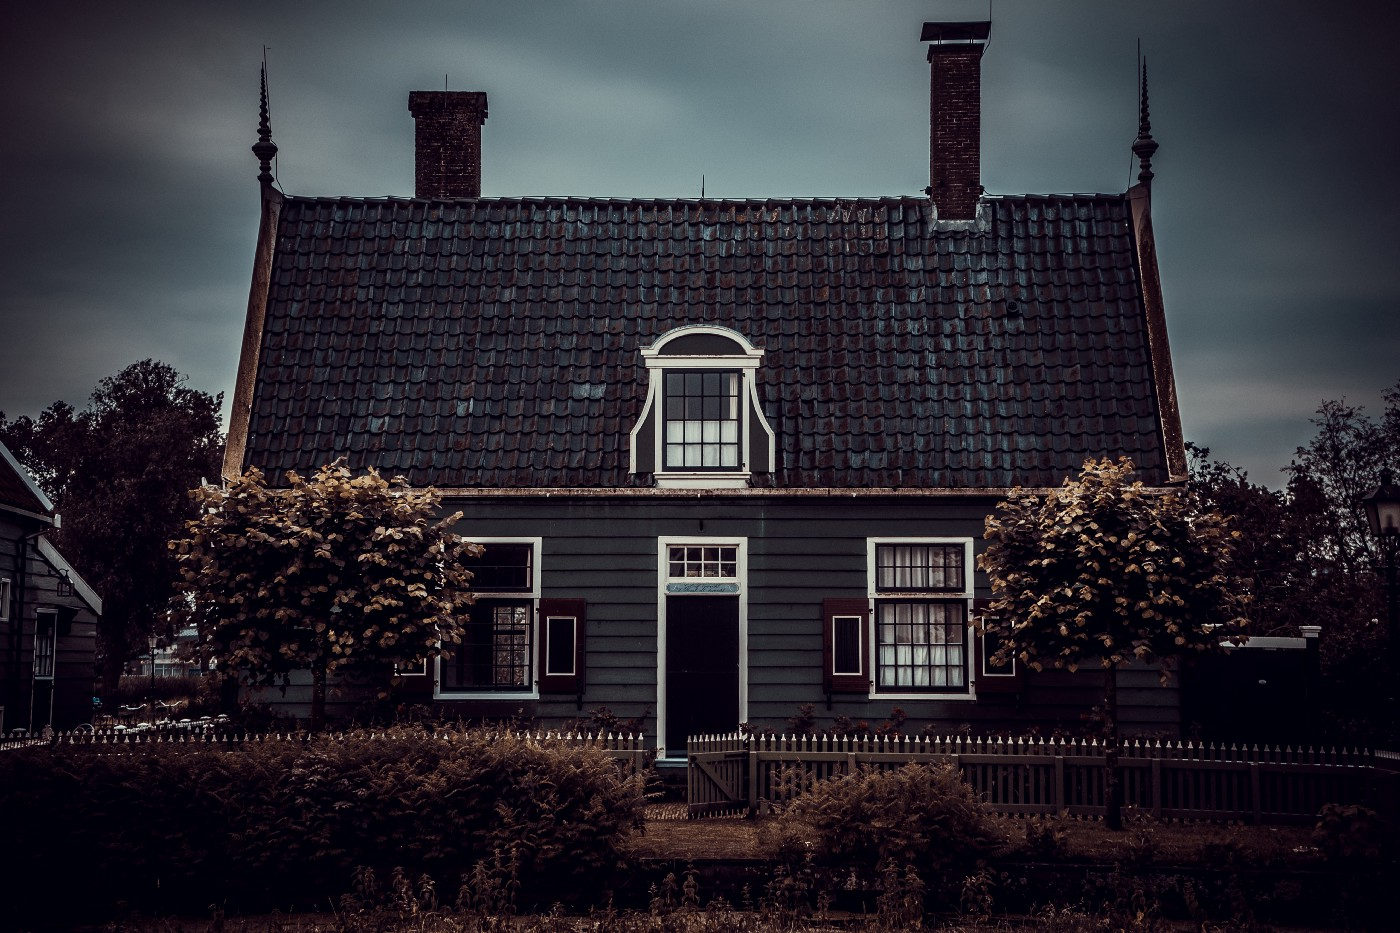 creepy looking house under storm clouds